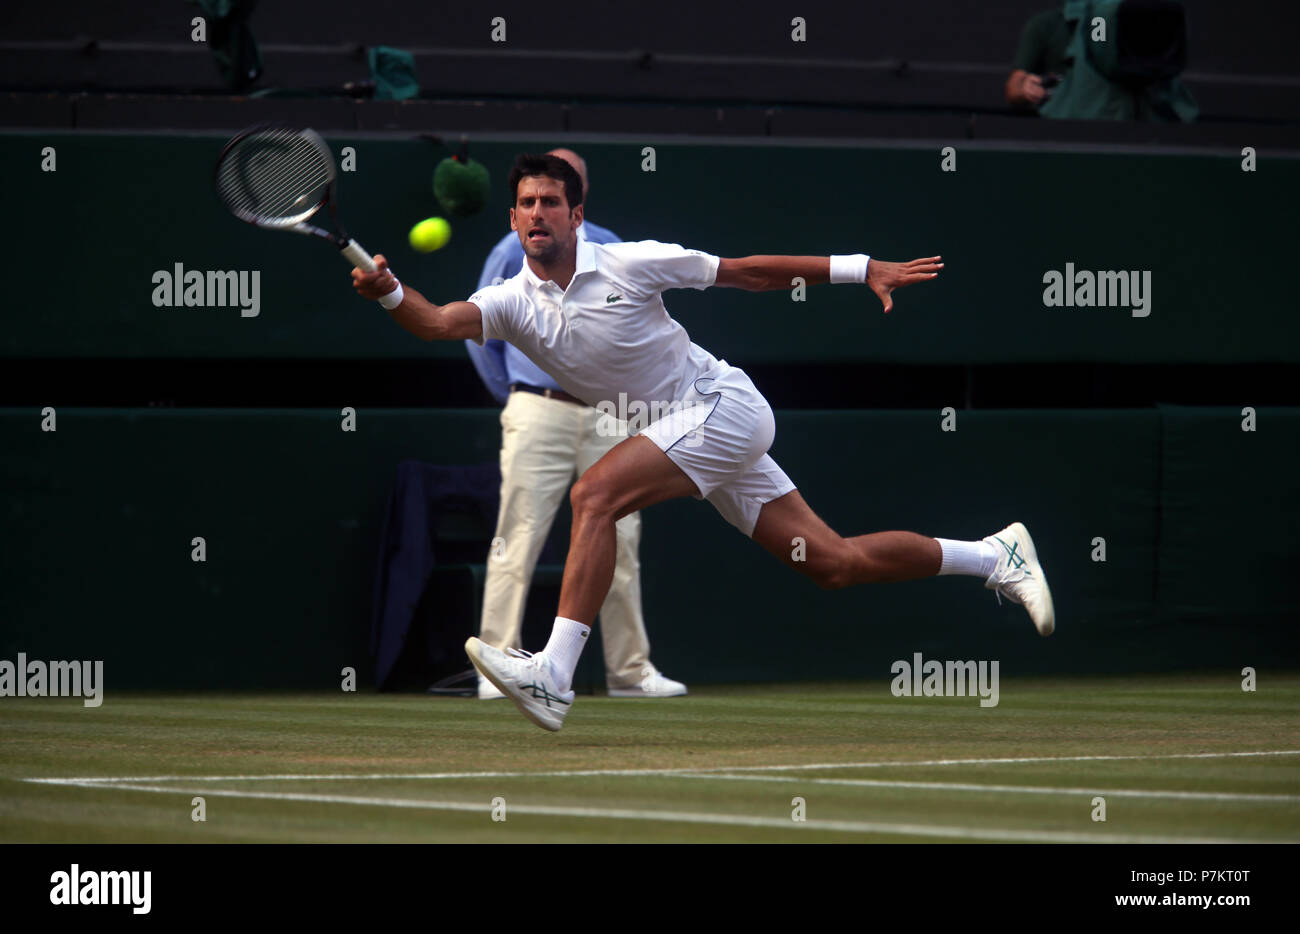 London, UK. 7th July 2018.   Wimbledon Tennis: Novak Djokovic during his third round match against Great Britain's Kyle Edmund on Center Court at Wimbledon today. Credit: Adam Stoltman/Alamy Live News - Stock Image